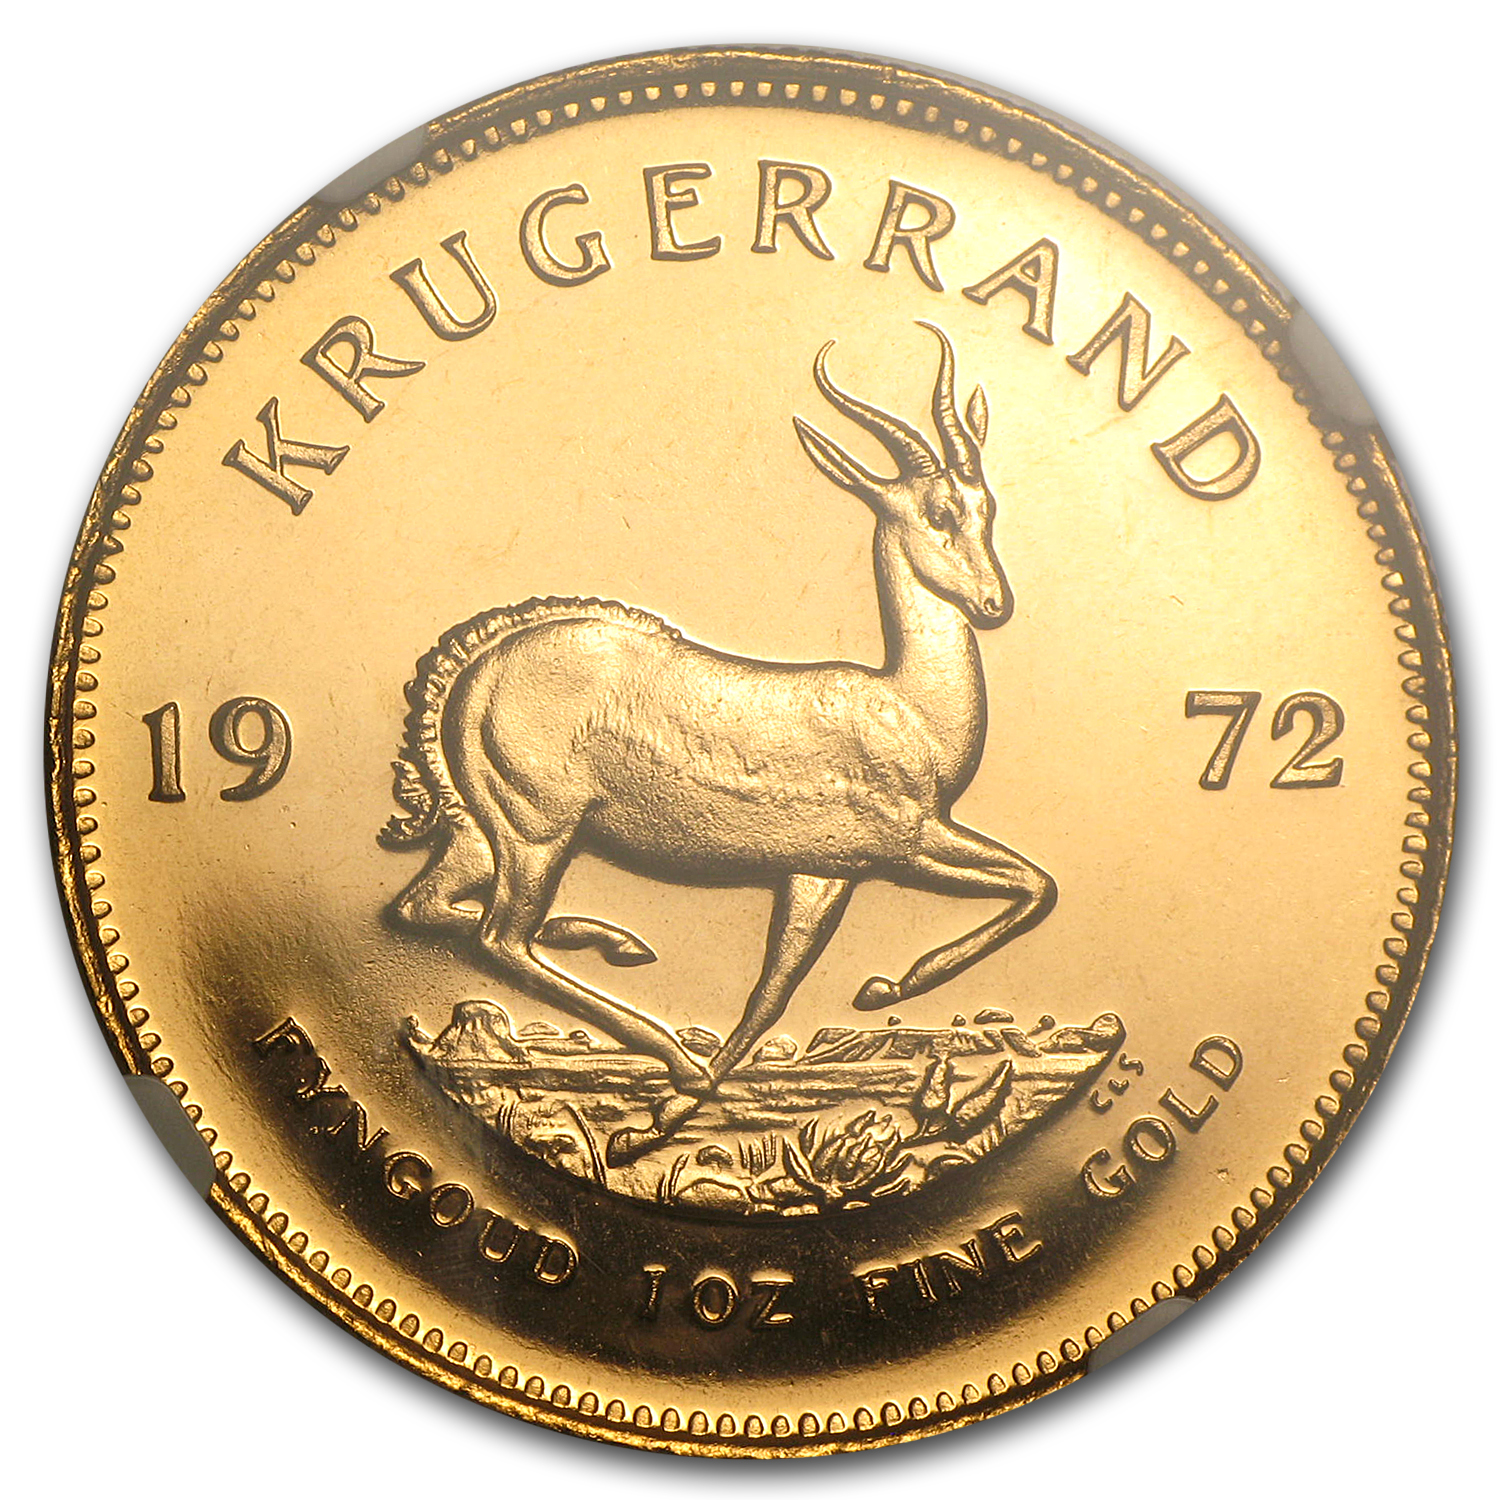 1972 1 oz Gold South African Krugerrand PF-66 Cameo NGC